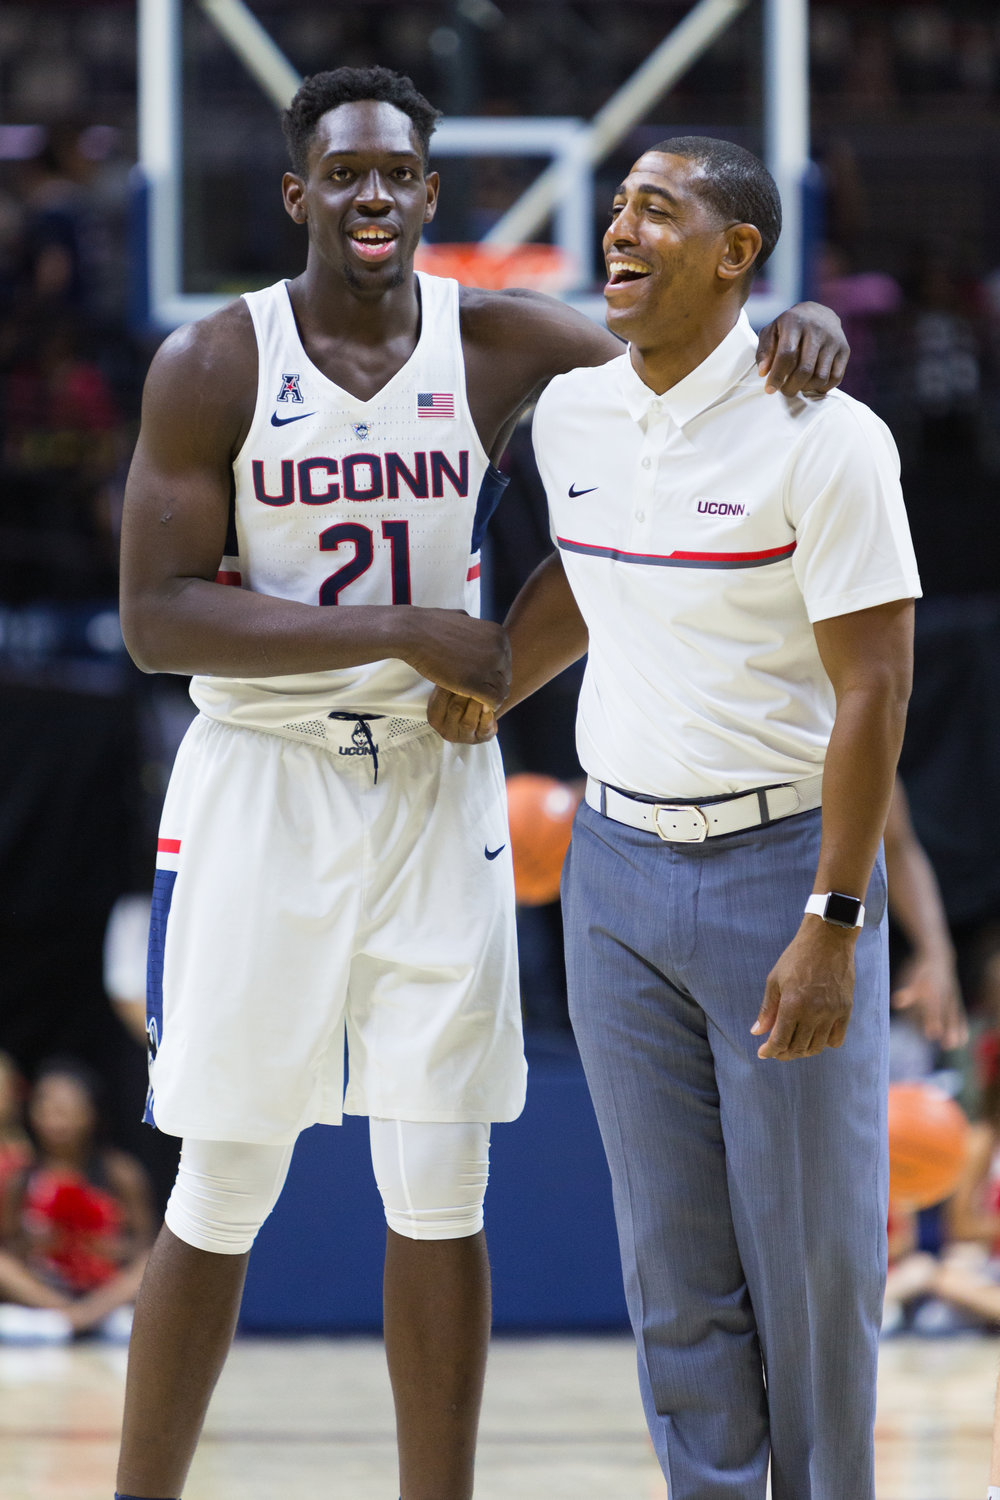 UConn head coach Kevin Ollie and freshman forward Mamadou Diarra shared a laugh during warm-ups.